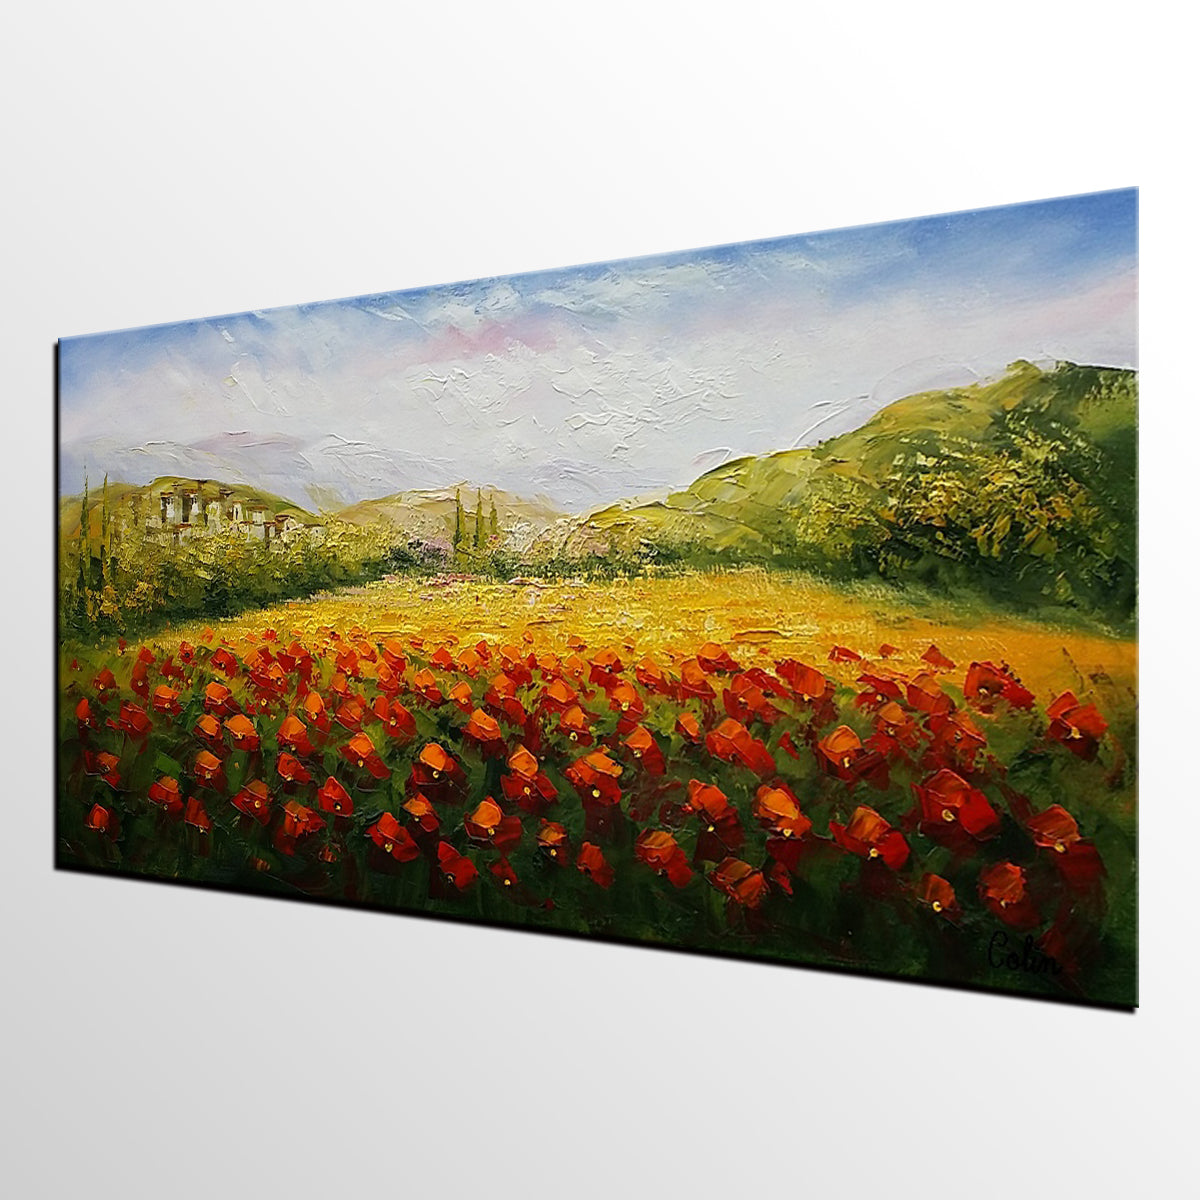 Red Poppy Painting, Original Wall Art, Landscape Painting, Large Art, Canvas Art, Wall Art, Original Artwork, Oil Painting 301